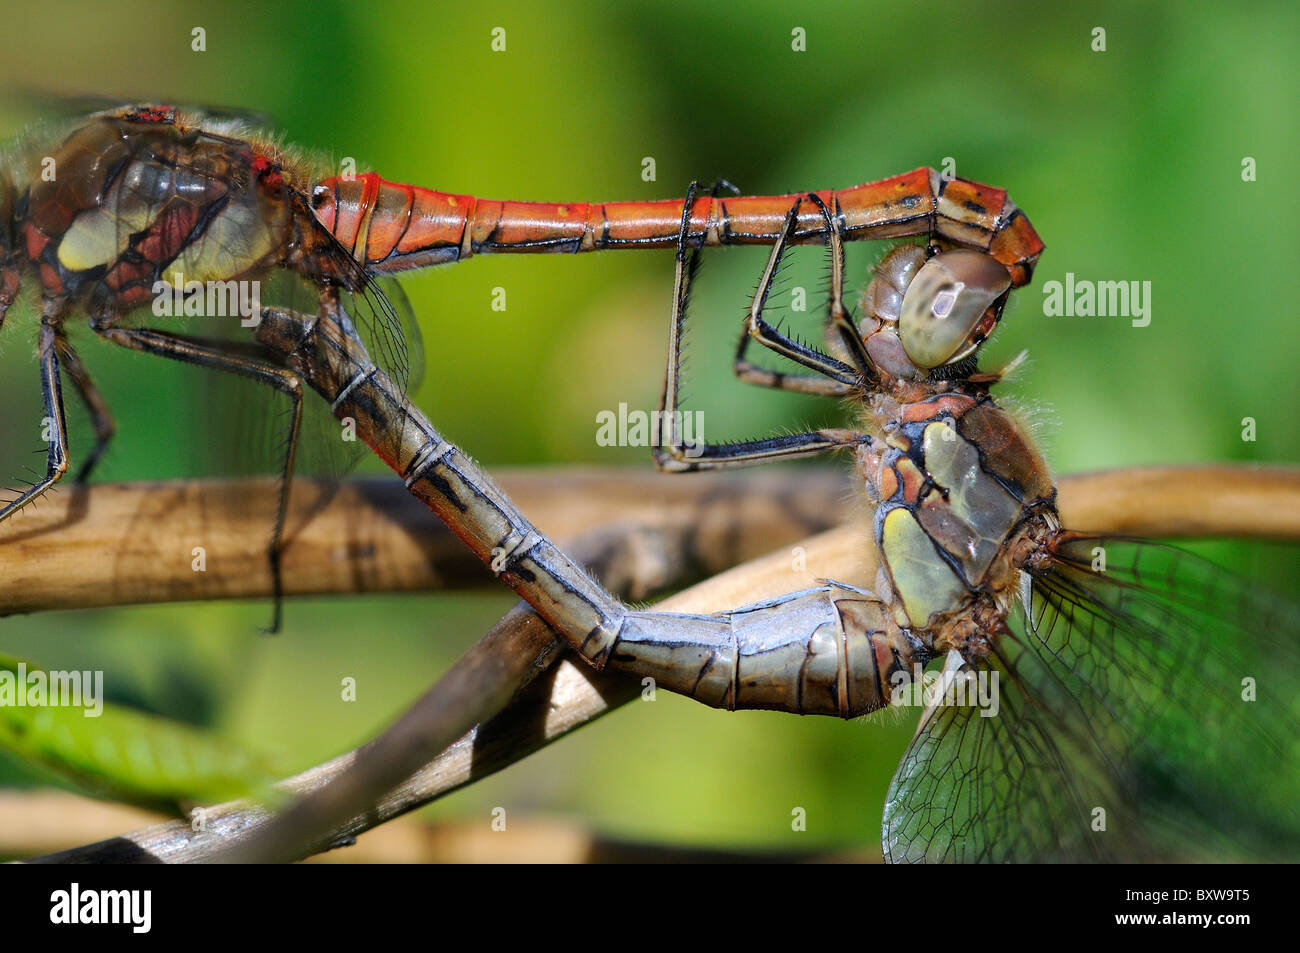 Common Darter Dragonfly (Sympetrum striolatum) pair mating, Oxfordshire, UK. - Stock Image